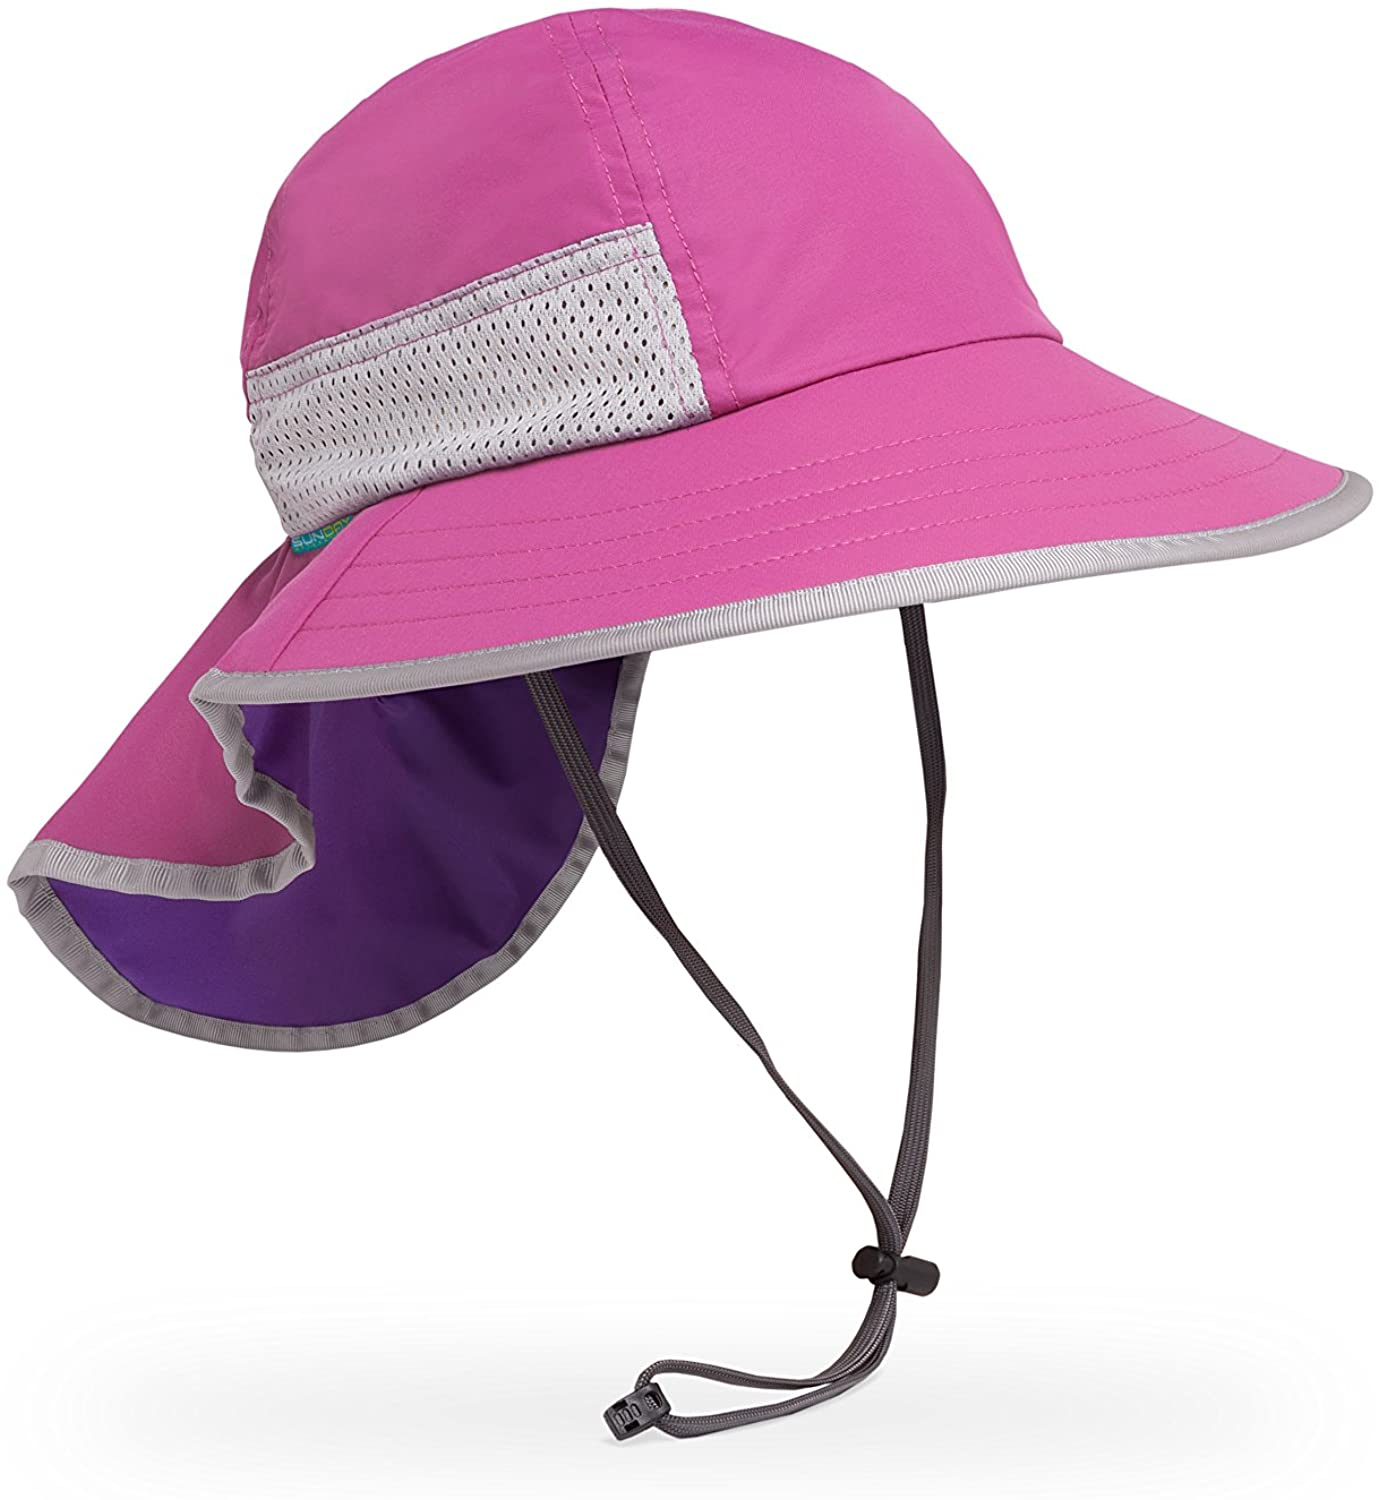 Sunday Afternoons Girls' Kids Play Hat